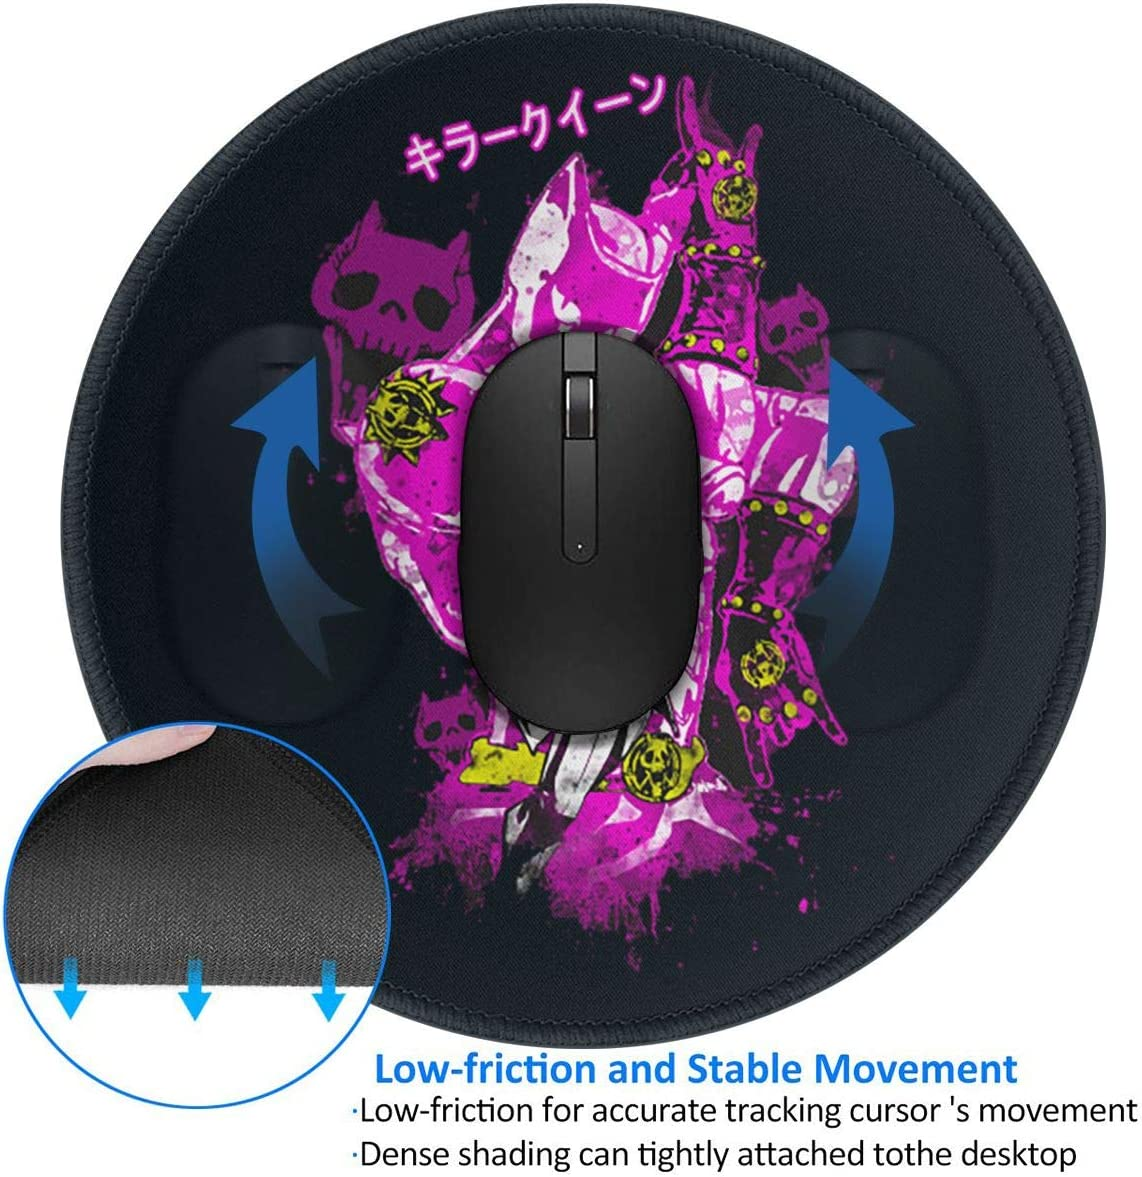 JoJos Bizarre Adventure Round Mouse Mat with Designs Natural Rubber Round Mouse Pad Mousepad Gaming Mouse Pad